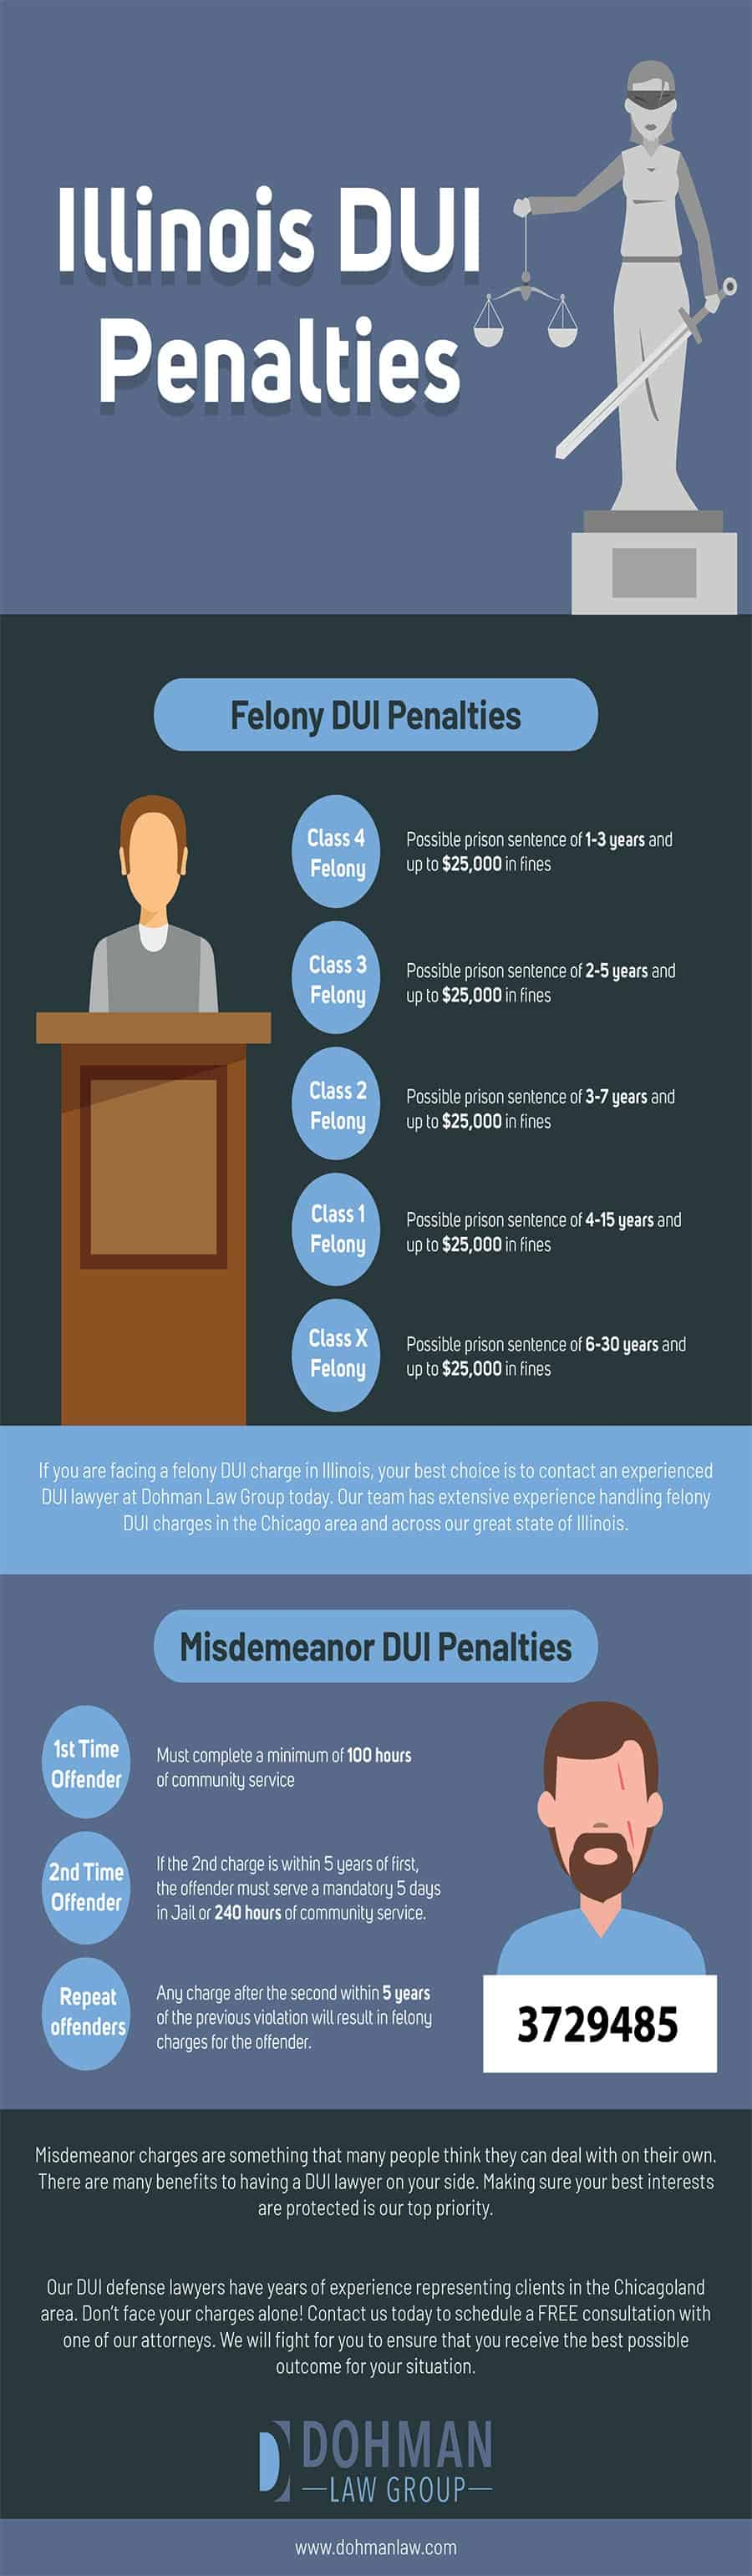 Illinois DUI Penalties - Infographic